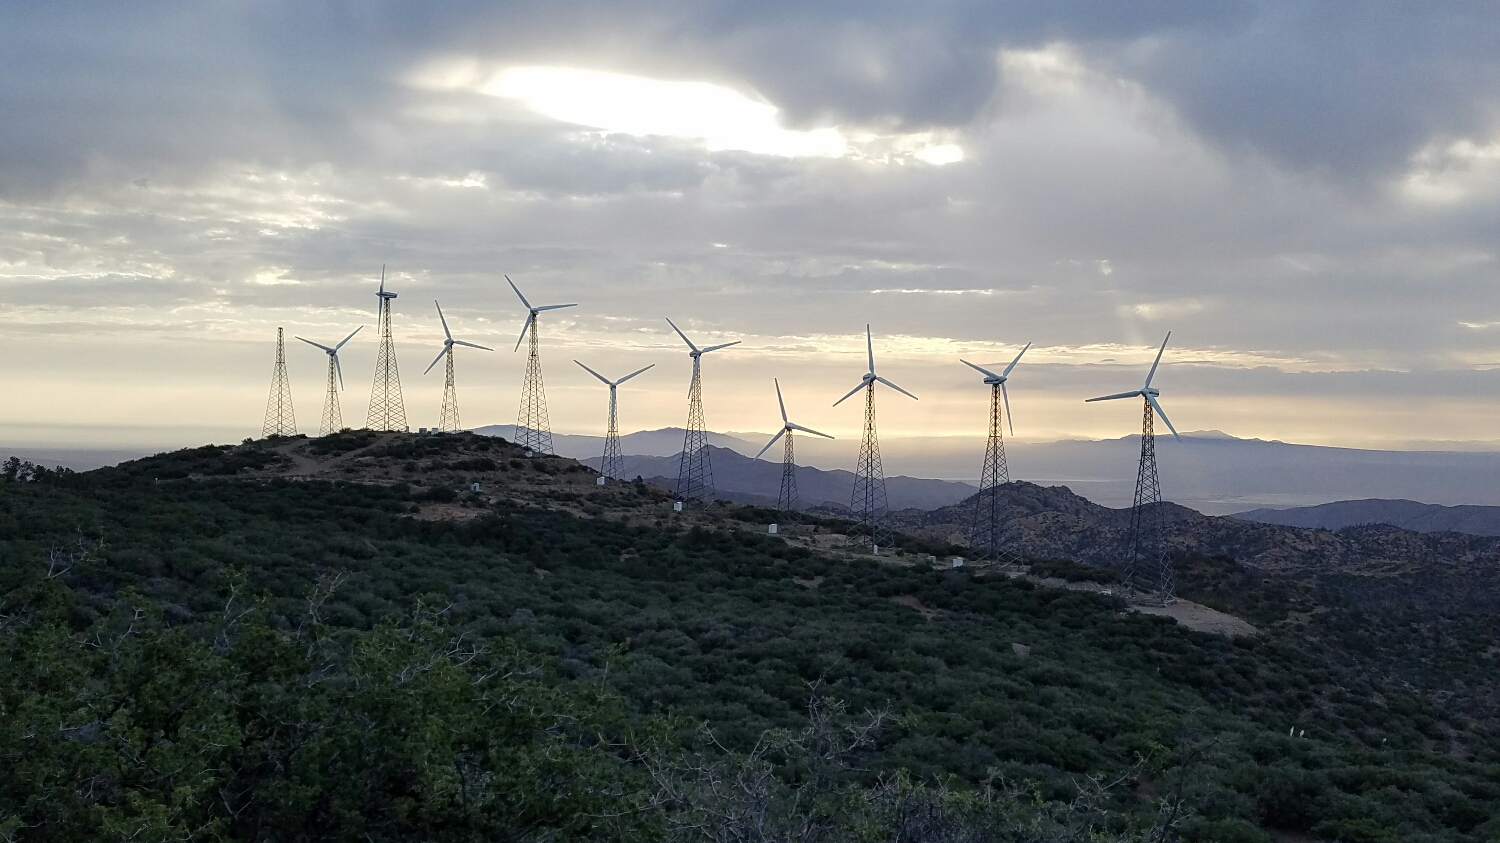 the last of the wind farms